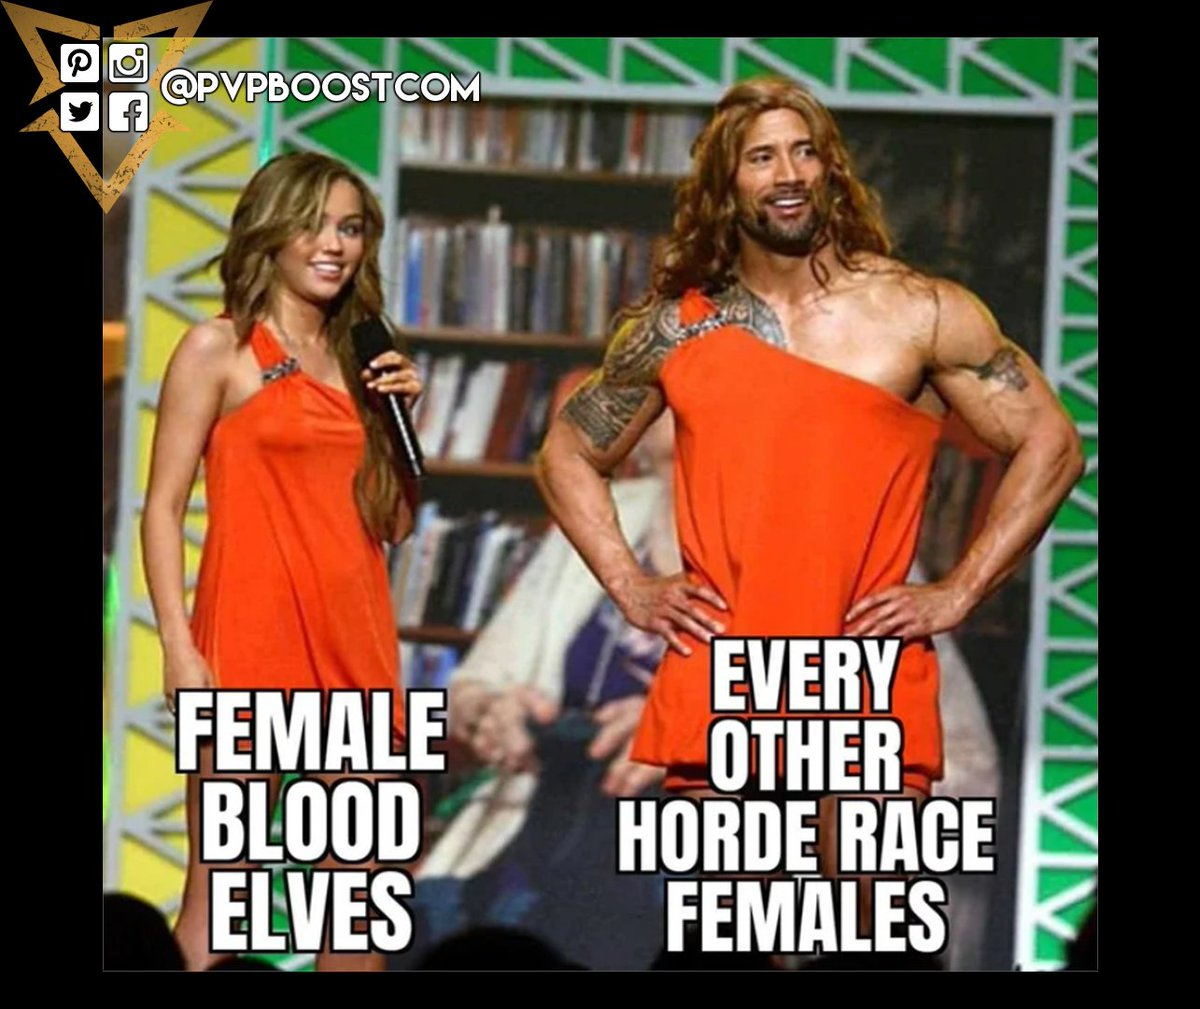 every dwarf female in alliance too . . . . . #pvpboostcom #pvpboost #gamingmeme #gamermemes #gamermeme #gaminghumor #videogames #dank #wowmemes #onlinegaming #playinggames #gamerlife #mmorpg #gaminglife #gamingpc #dankmemes #progamer #computergame #onlinegamer #gamer4ever https://t.co/sVMHsR5KzR